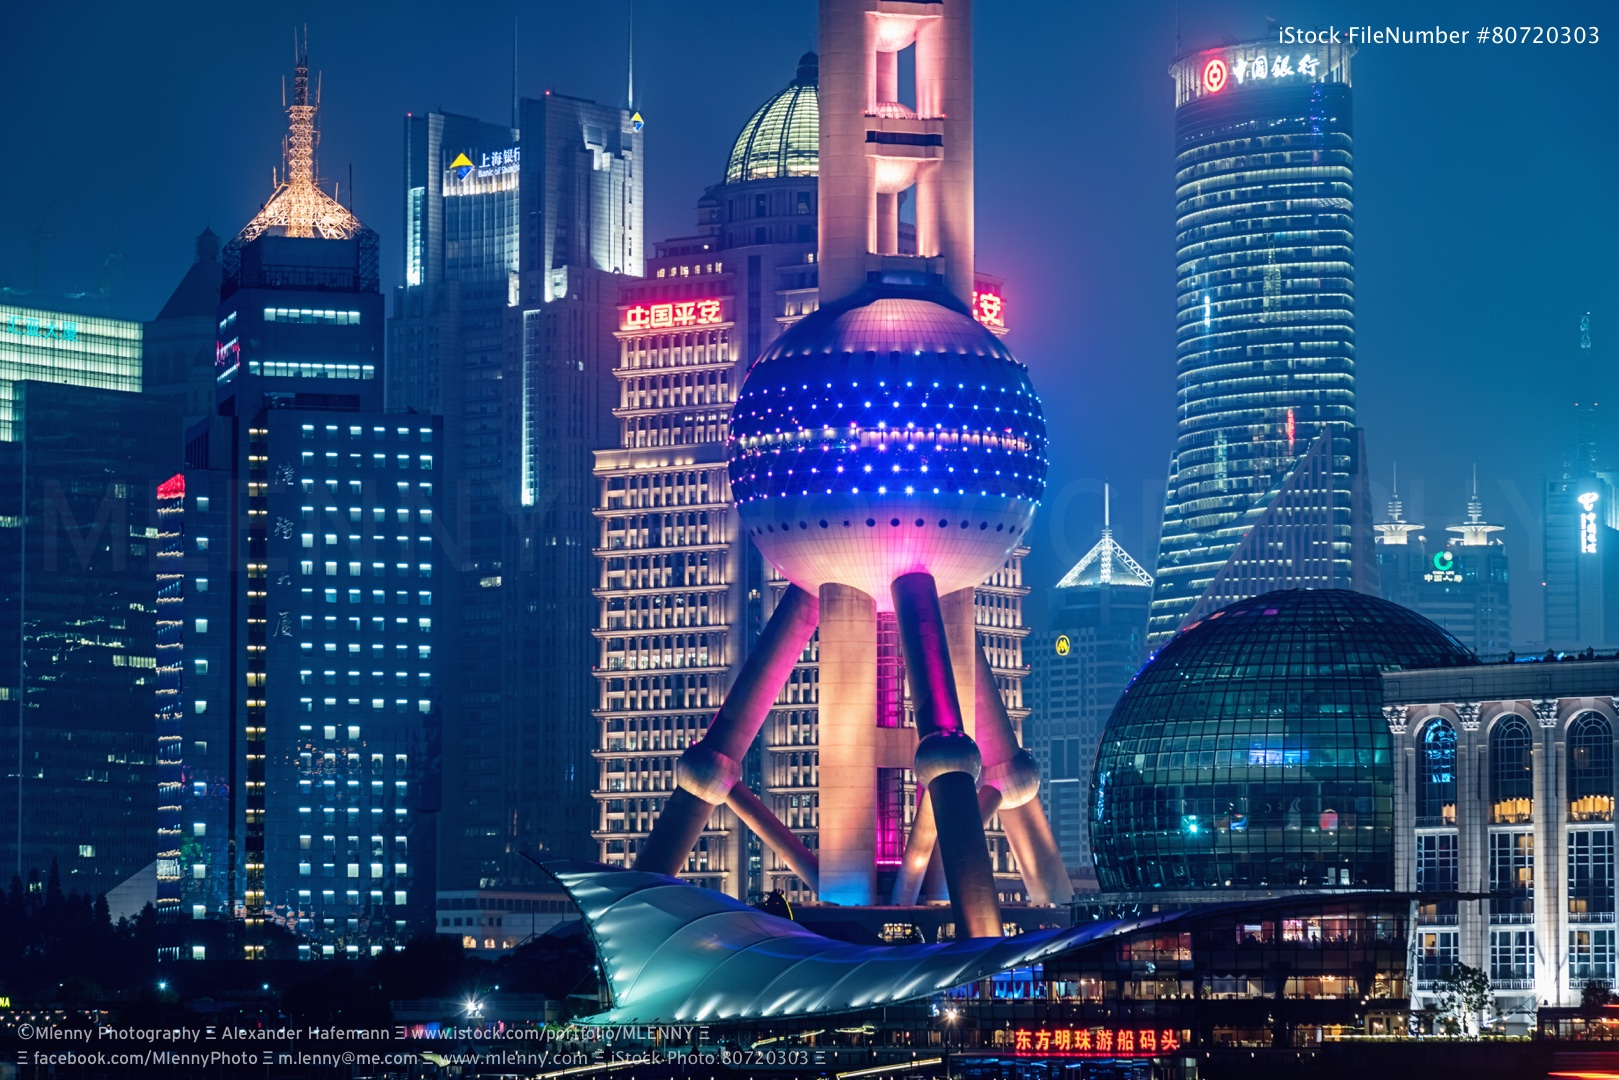 Futuristic Shanghai, China